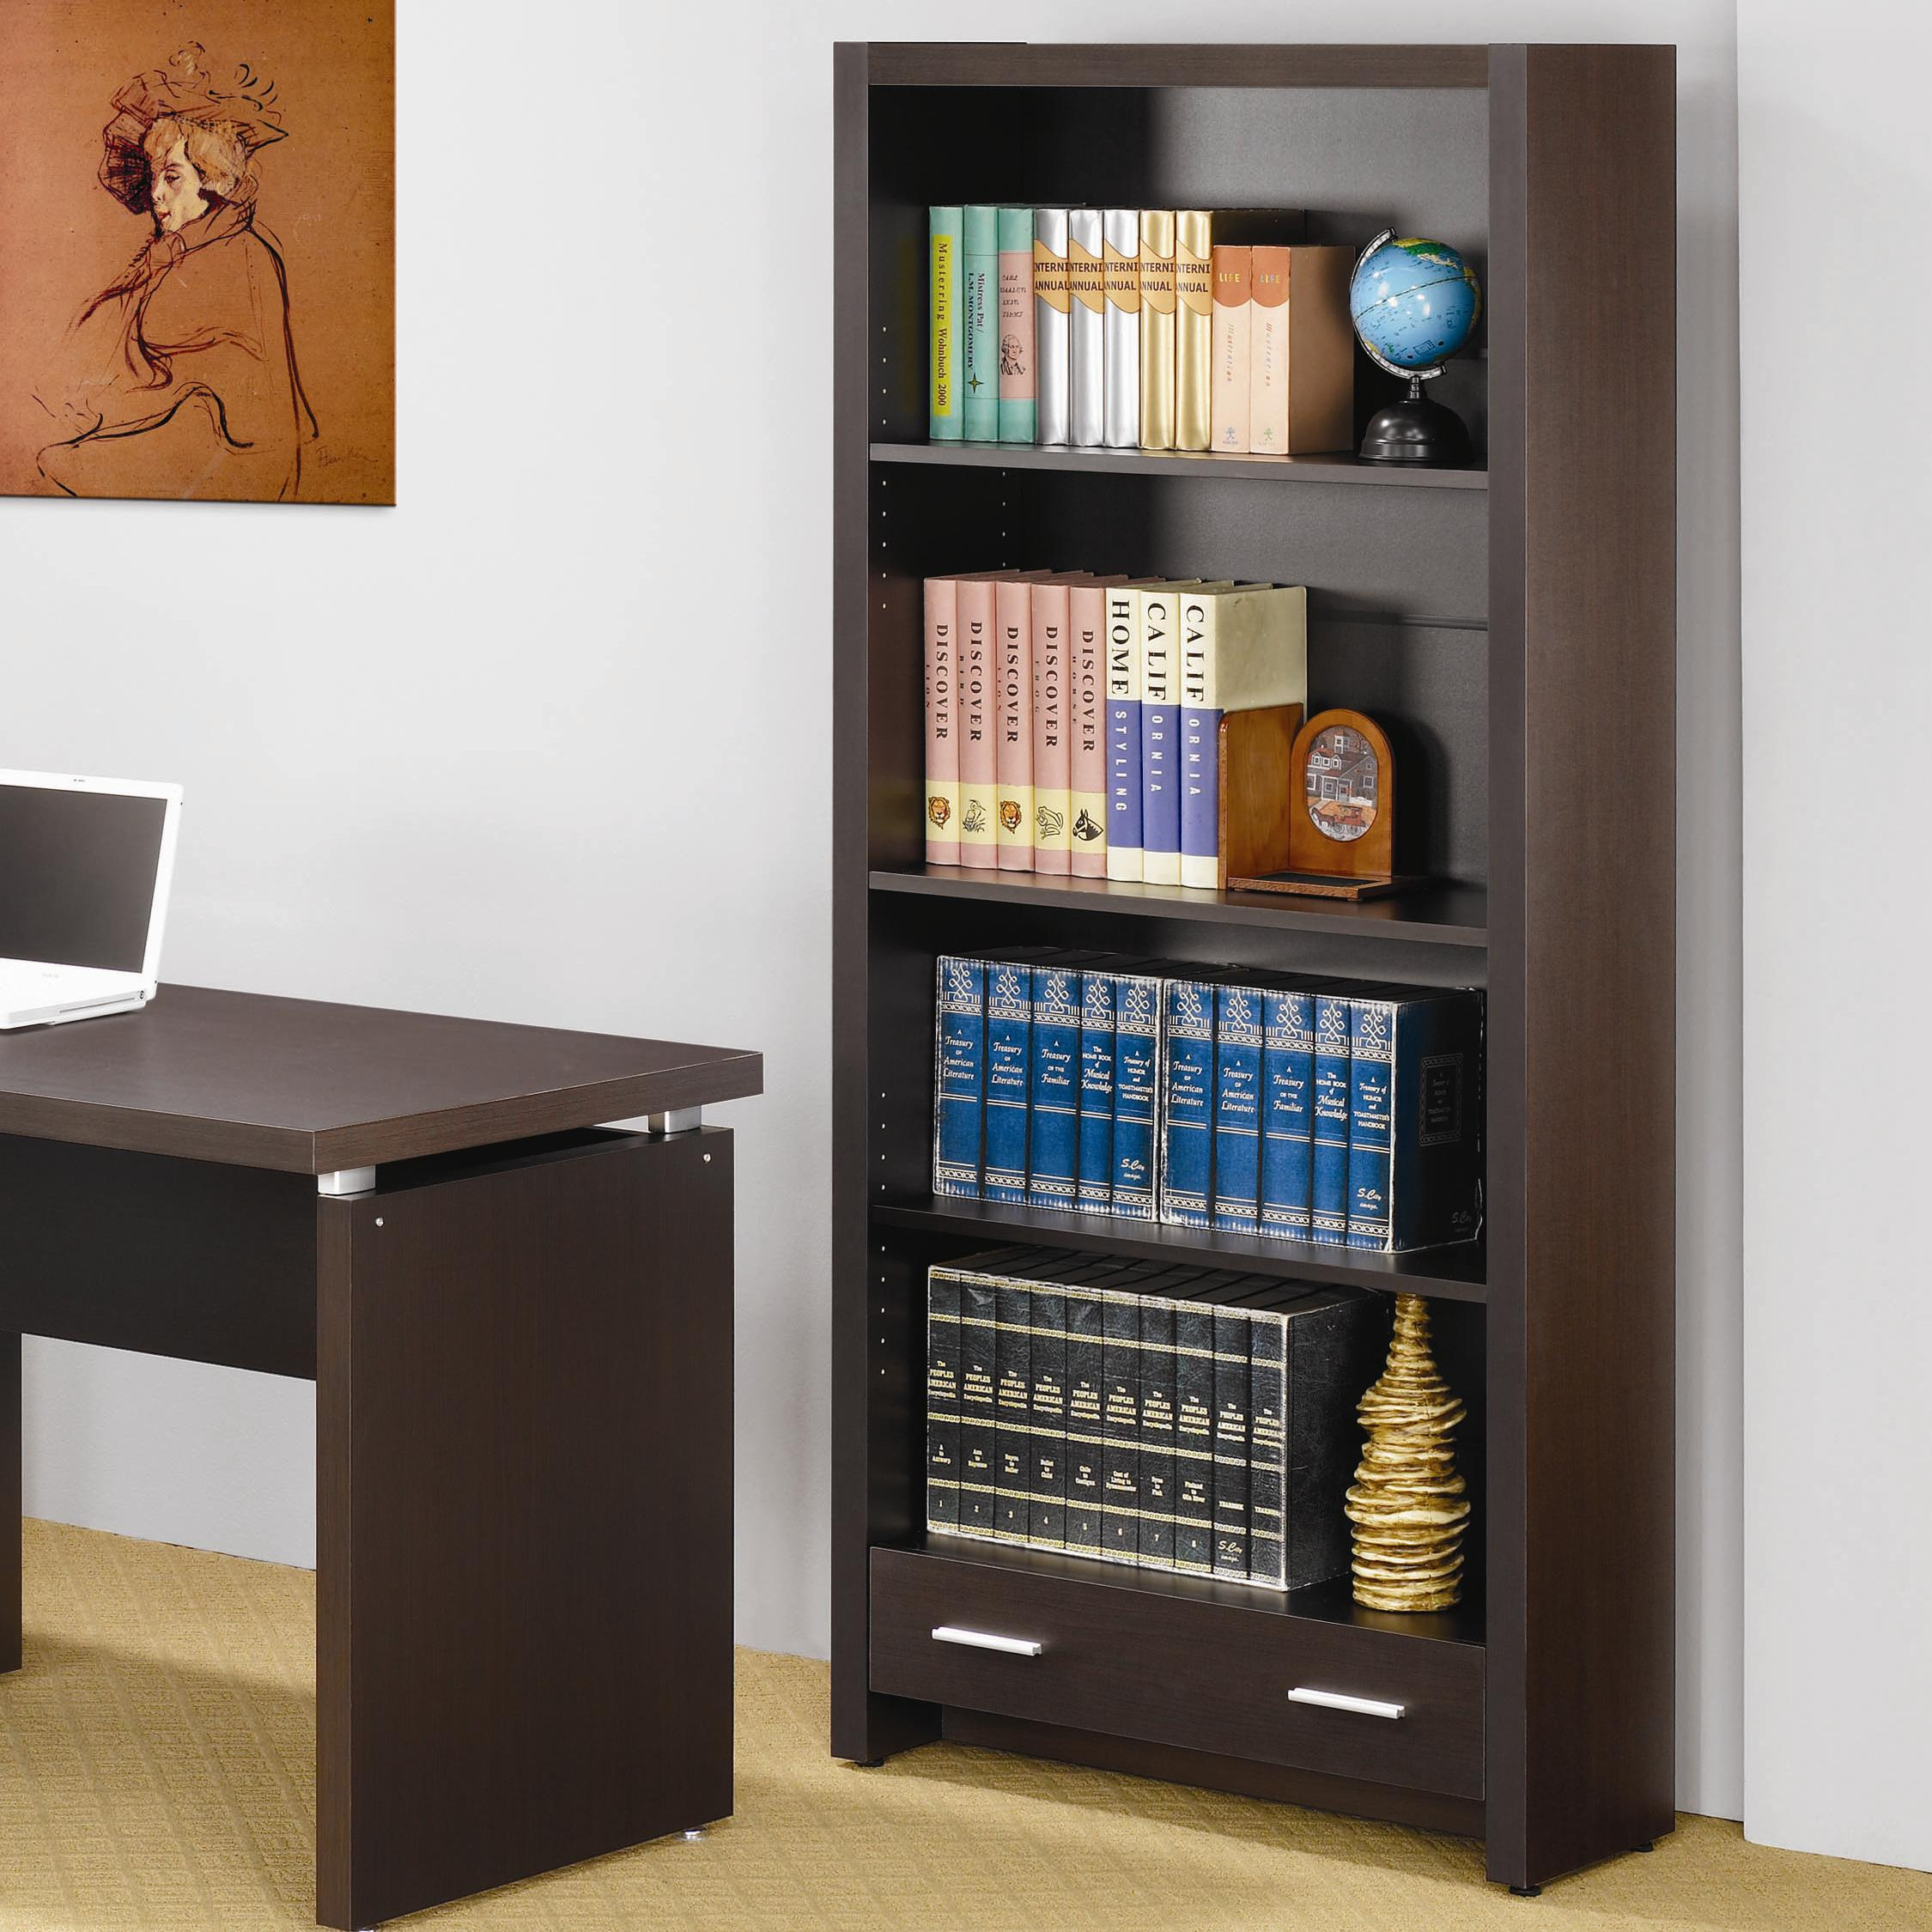 Skylar Bookcase by Coaster at Northeast Factory Direct